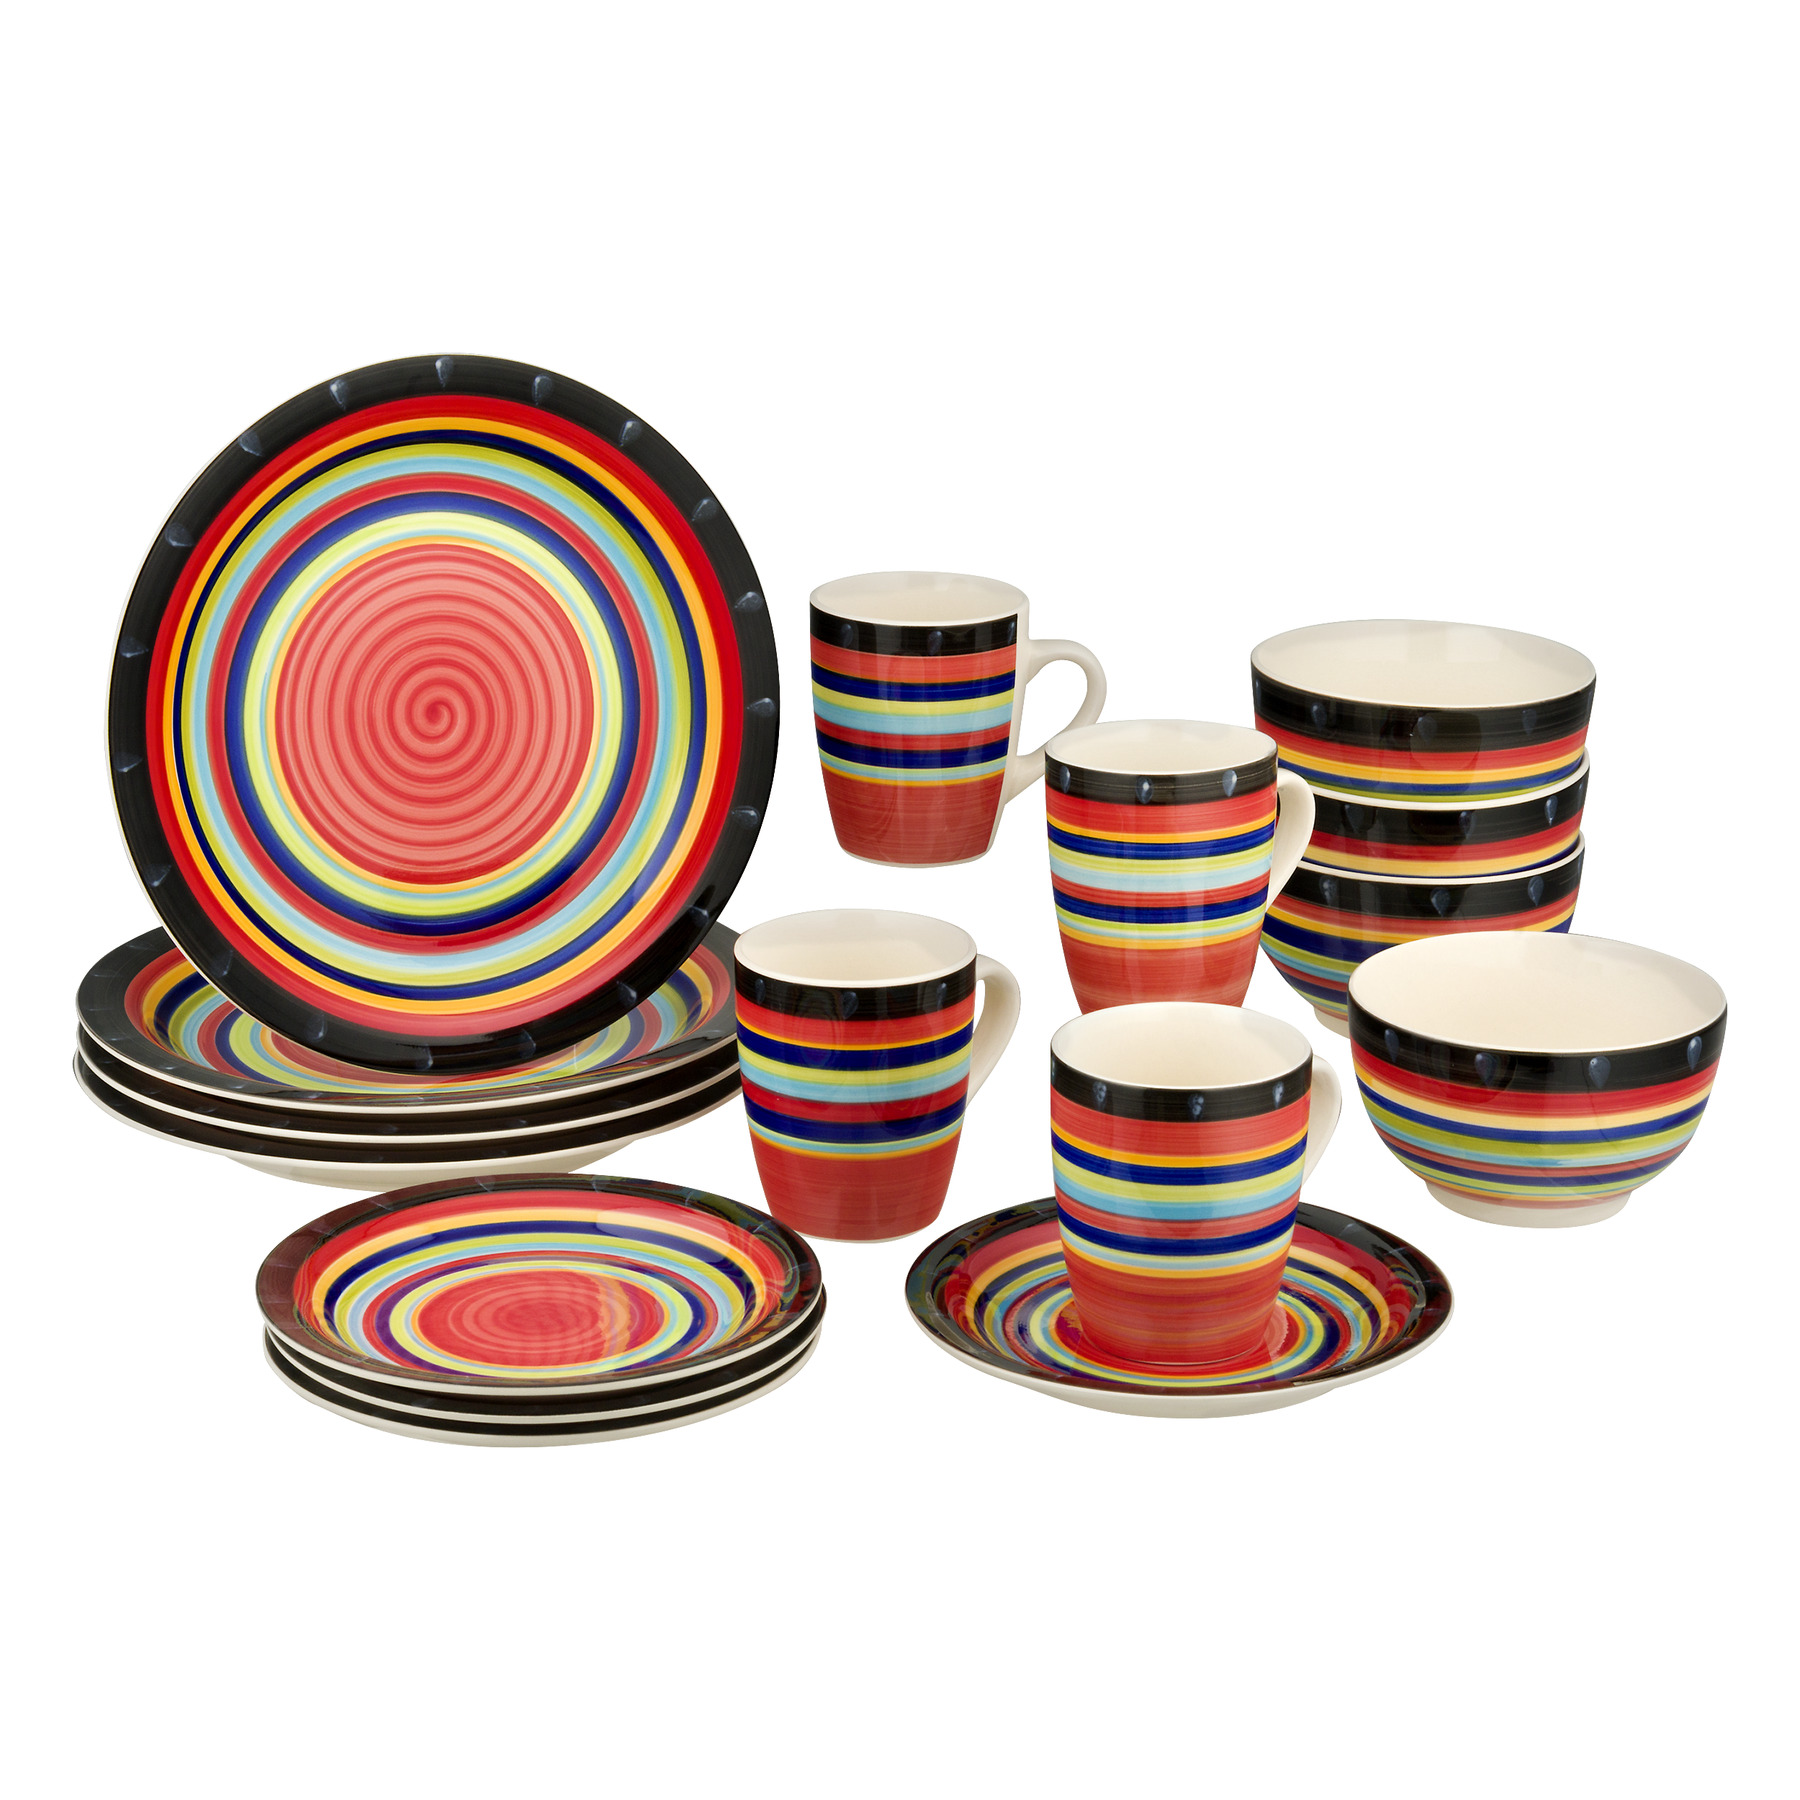 Gibson Home Casa Stella Dinnerware Set - 16 PC, 16.0 PIECE(S)